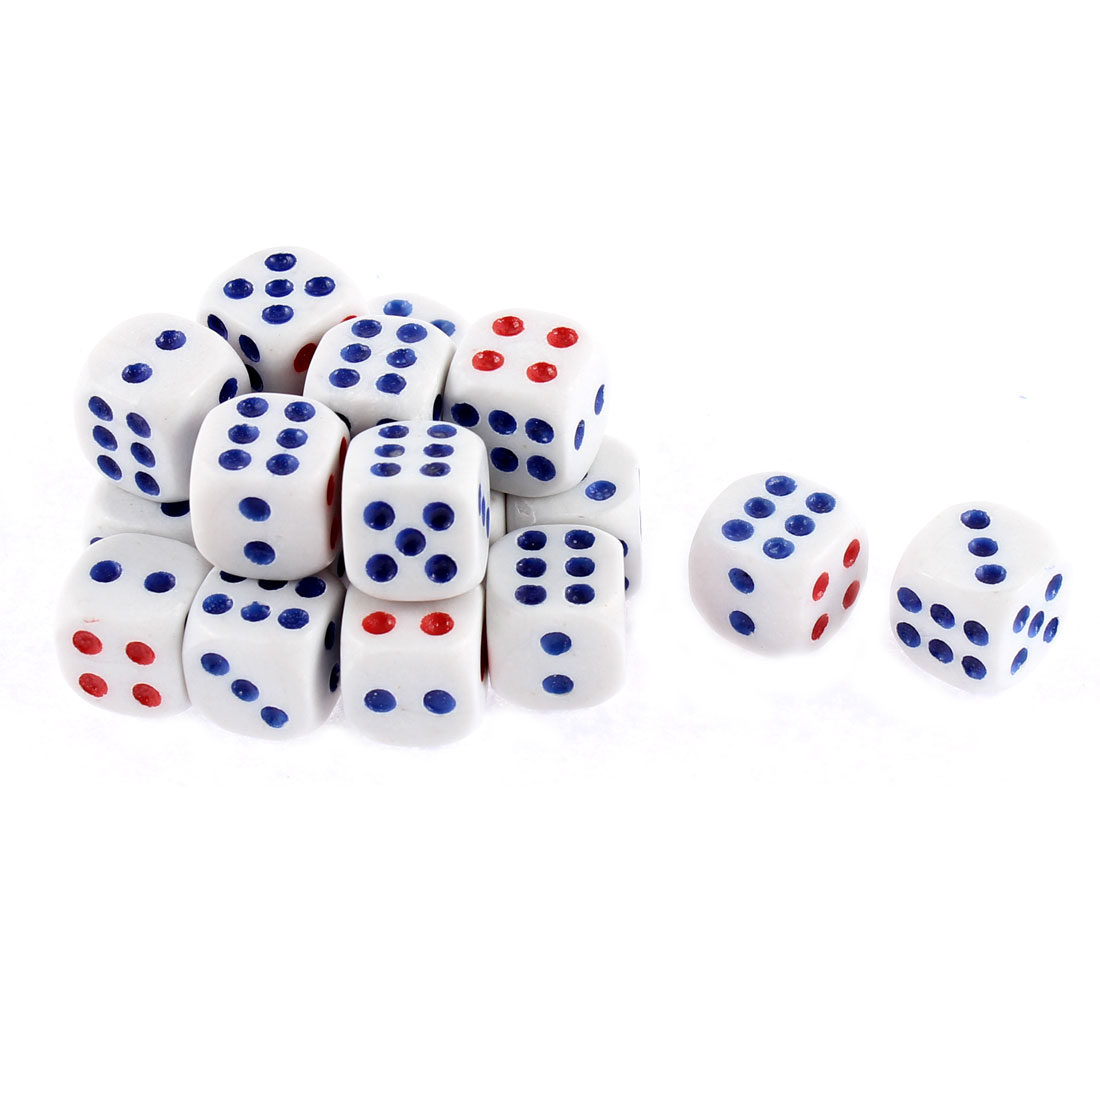 Unique Bargains 20 Pcs Round Corner Lucky Game Entertainment Bar Casino Cubical Dices